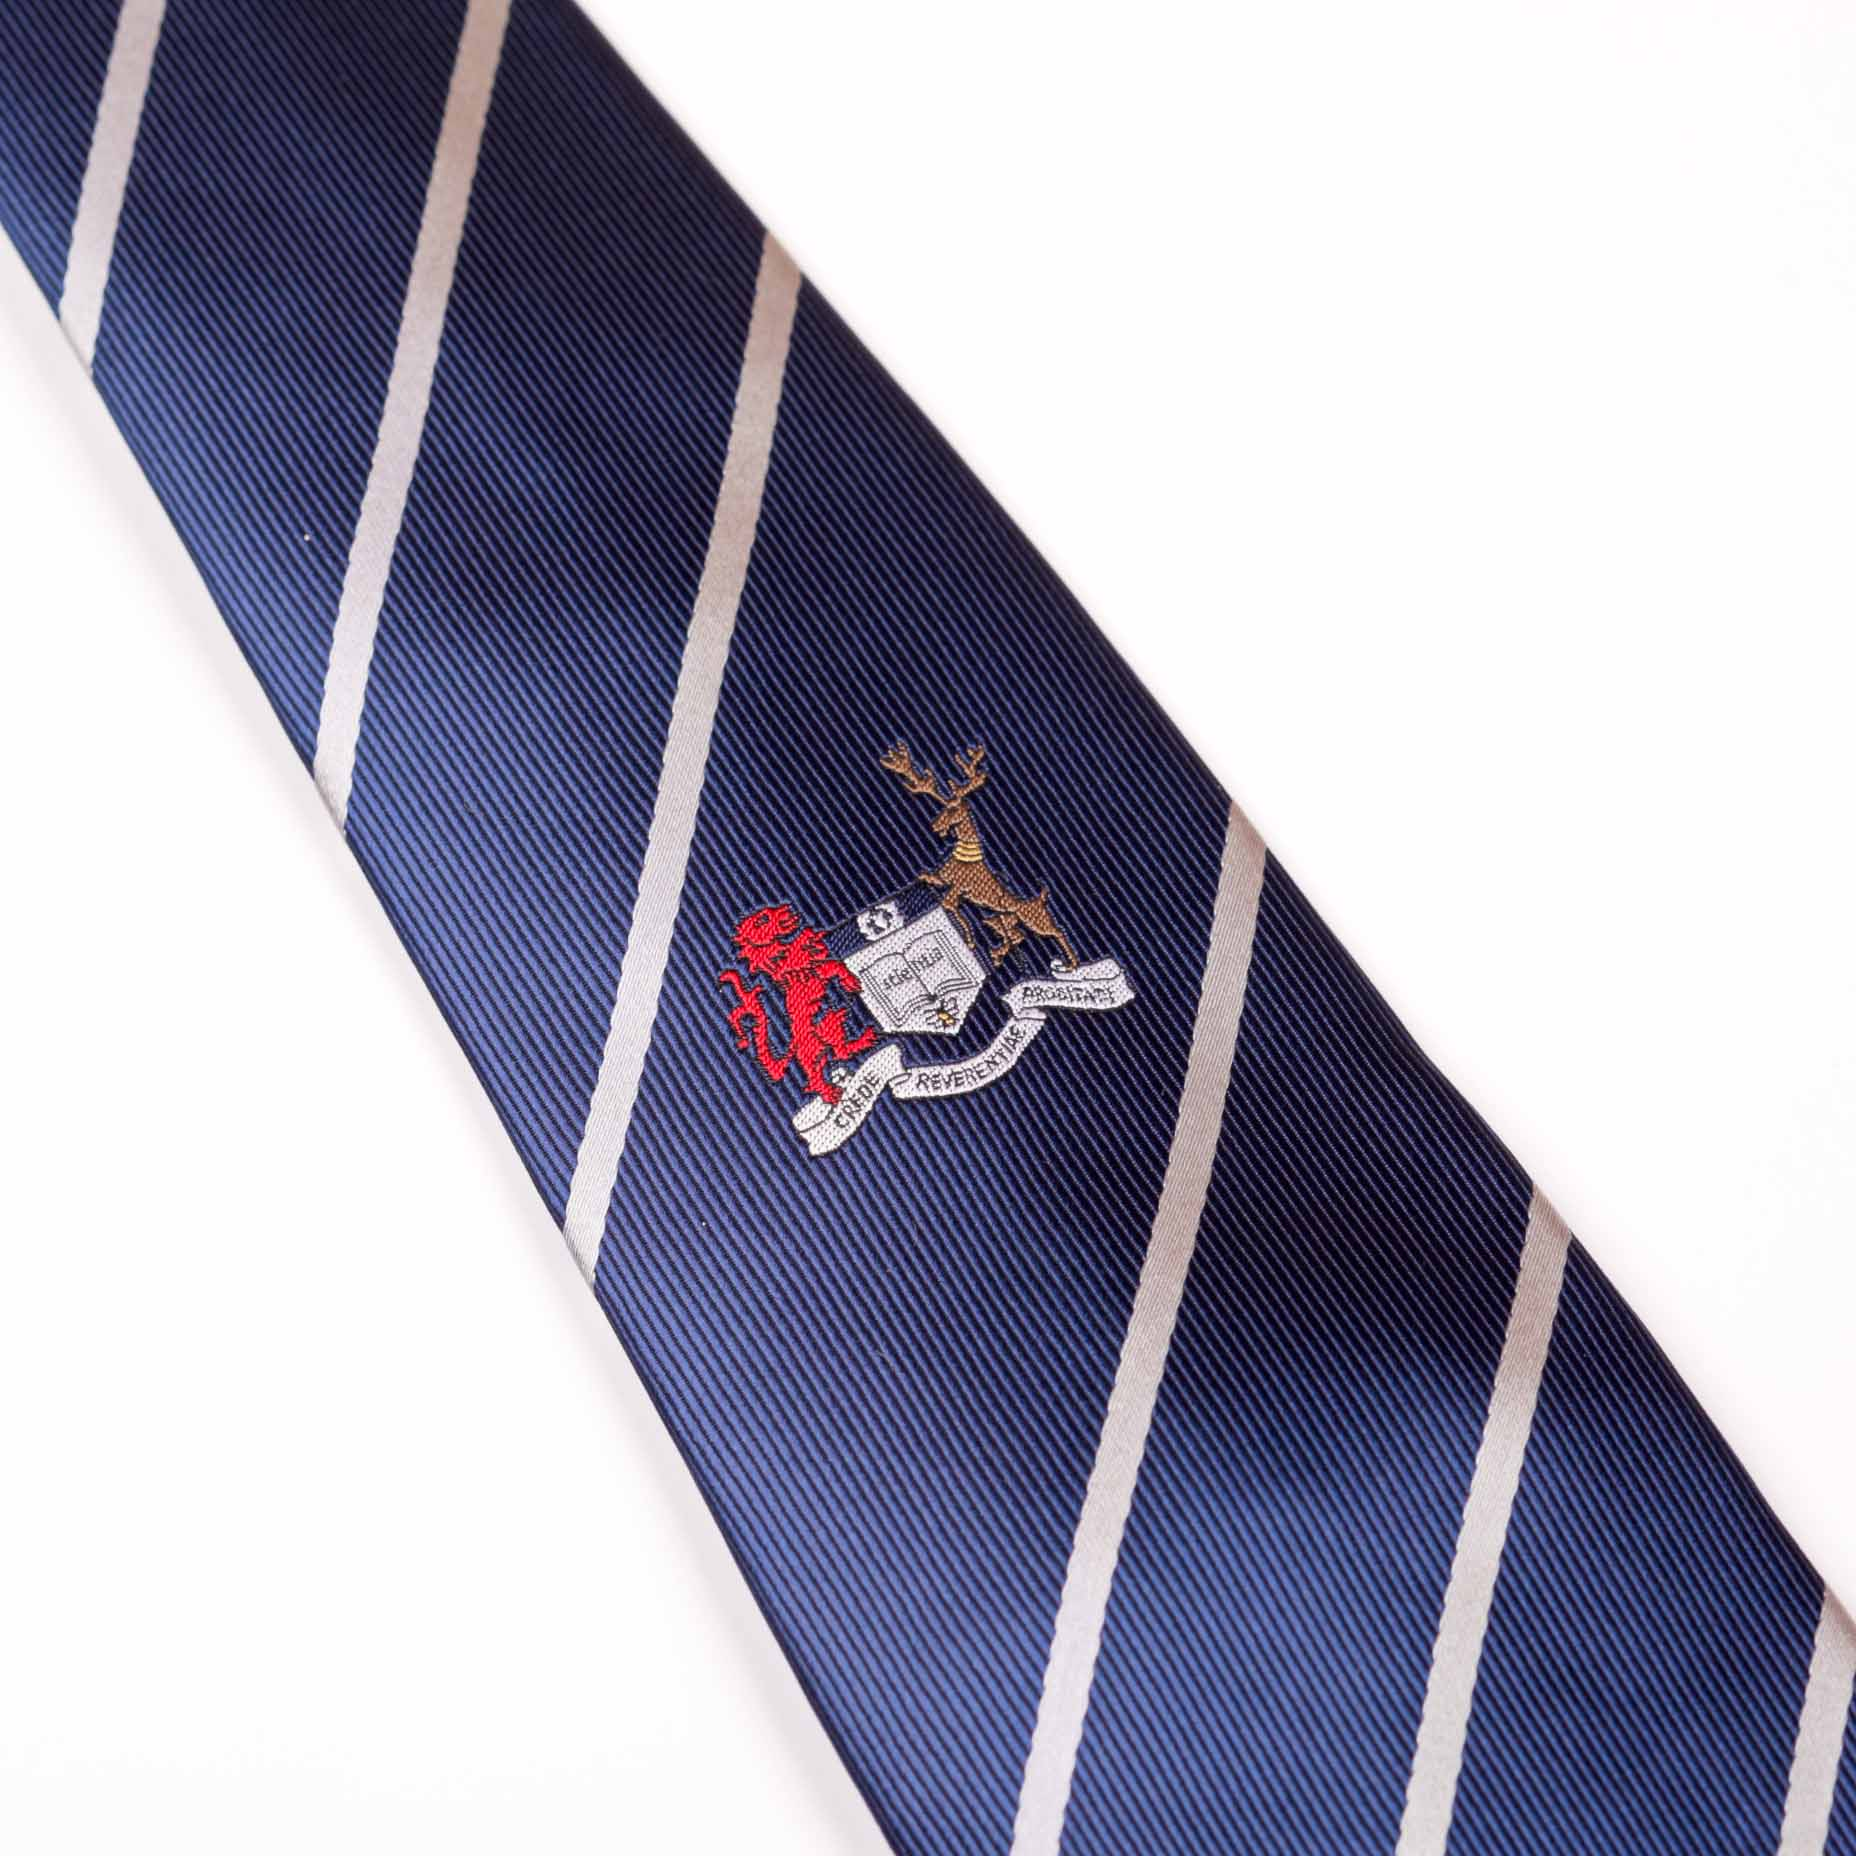 custom club ties, personalised club ties, bespoke club ties, rugby club ties